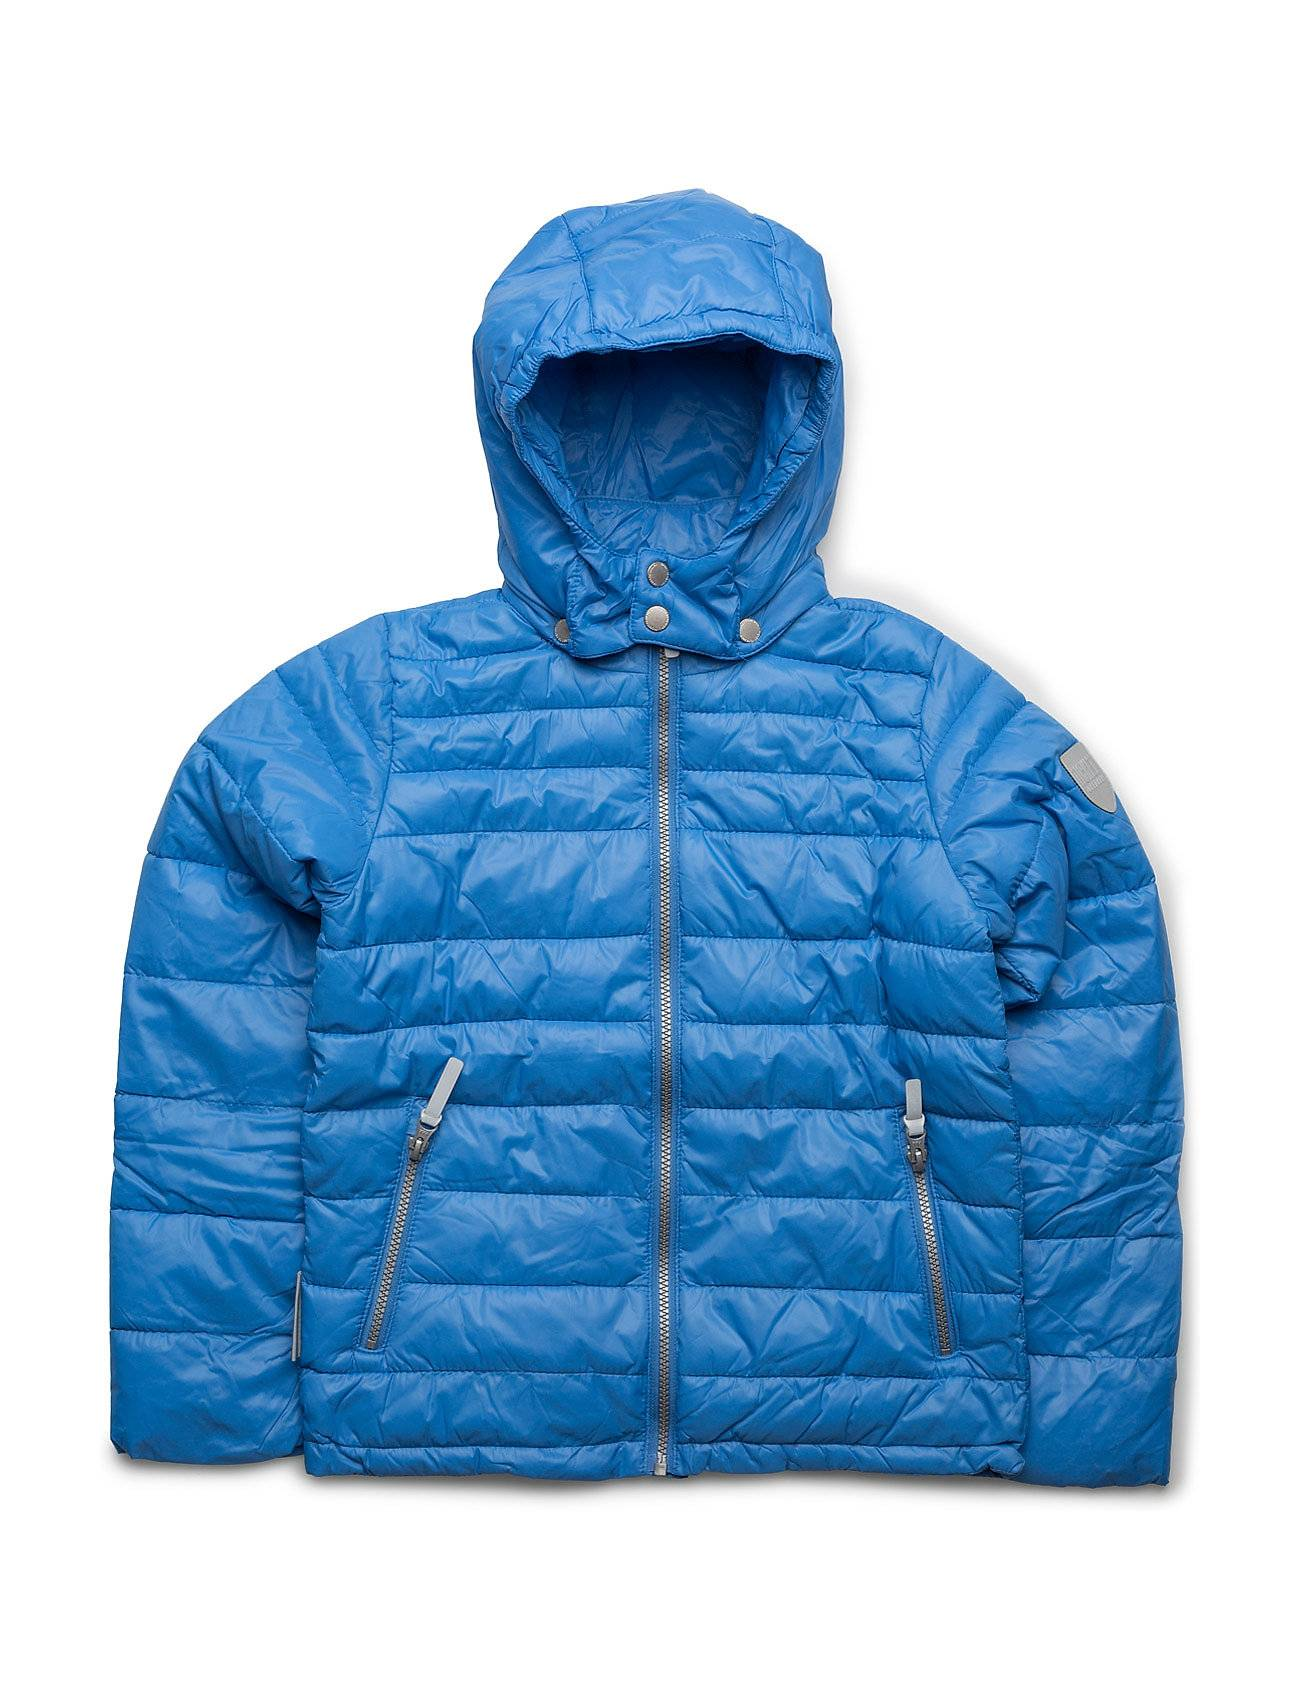 Ticket to Heaven Jacket Lightweight Padding Chris With Detachable Hood